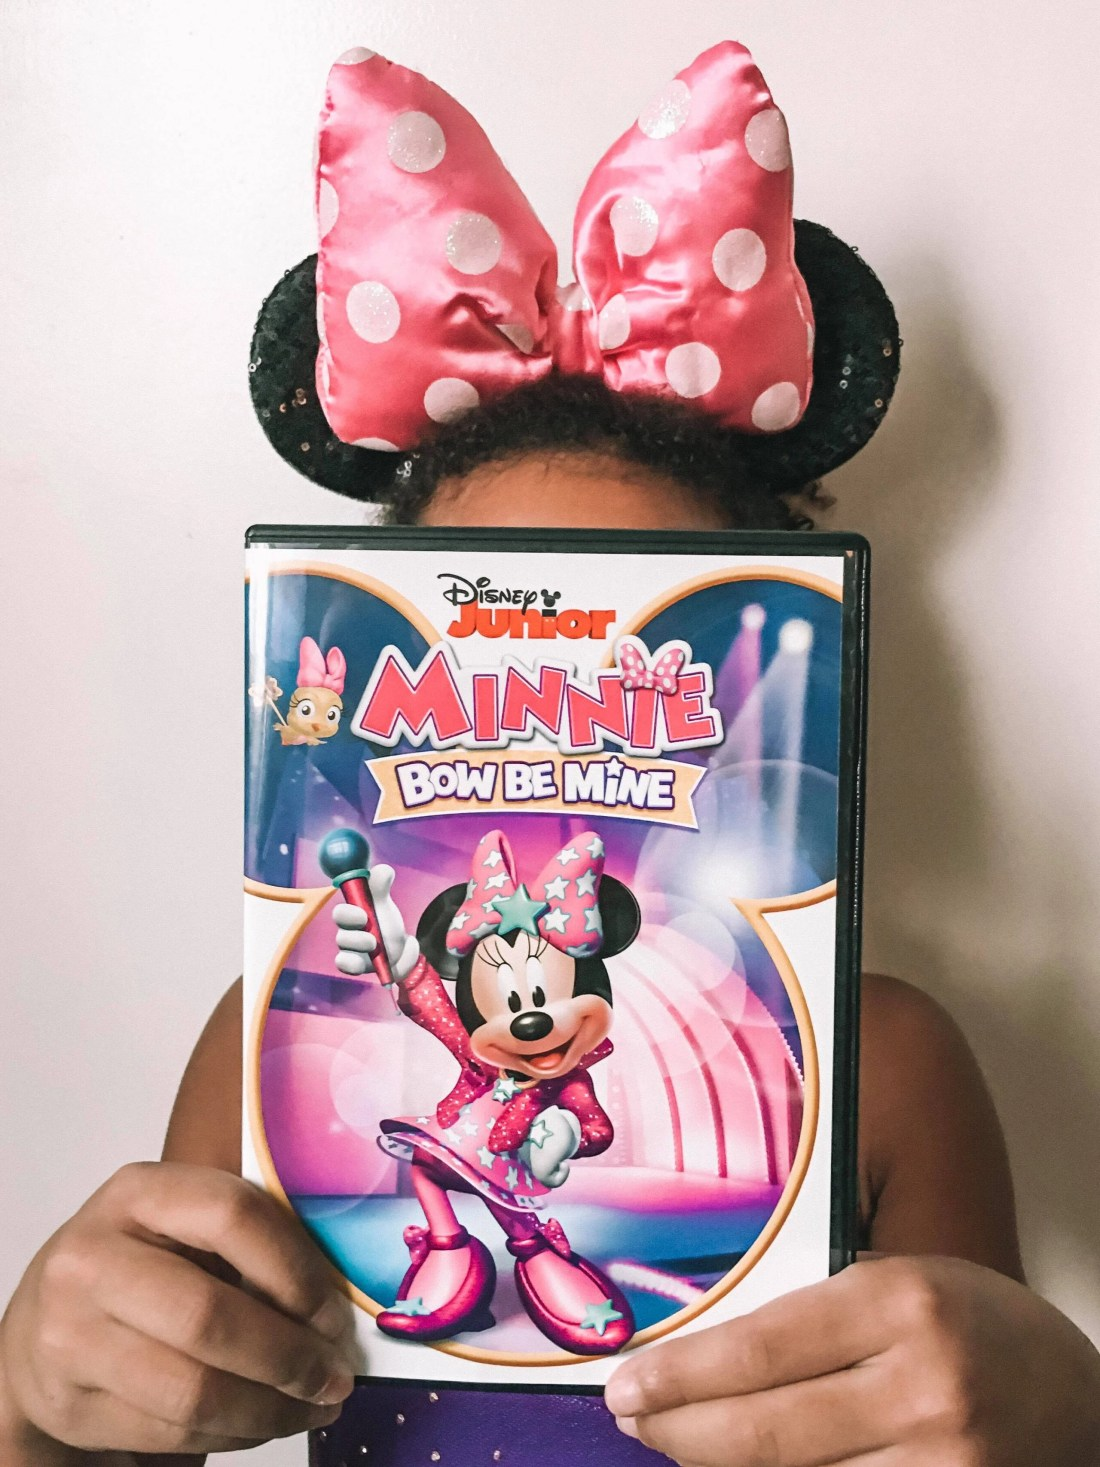 DIsney Jr. Minnie: Bow Be Mine DVD. Minnie and Daisy are tackling new adventures in their newest Disney Jr. DVD Minnie: Bow Be Mine. Filled with 12 fun-filled episodes plus bonus content.